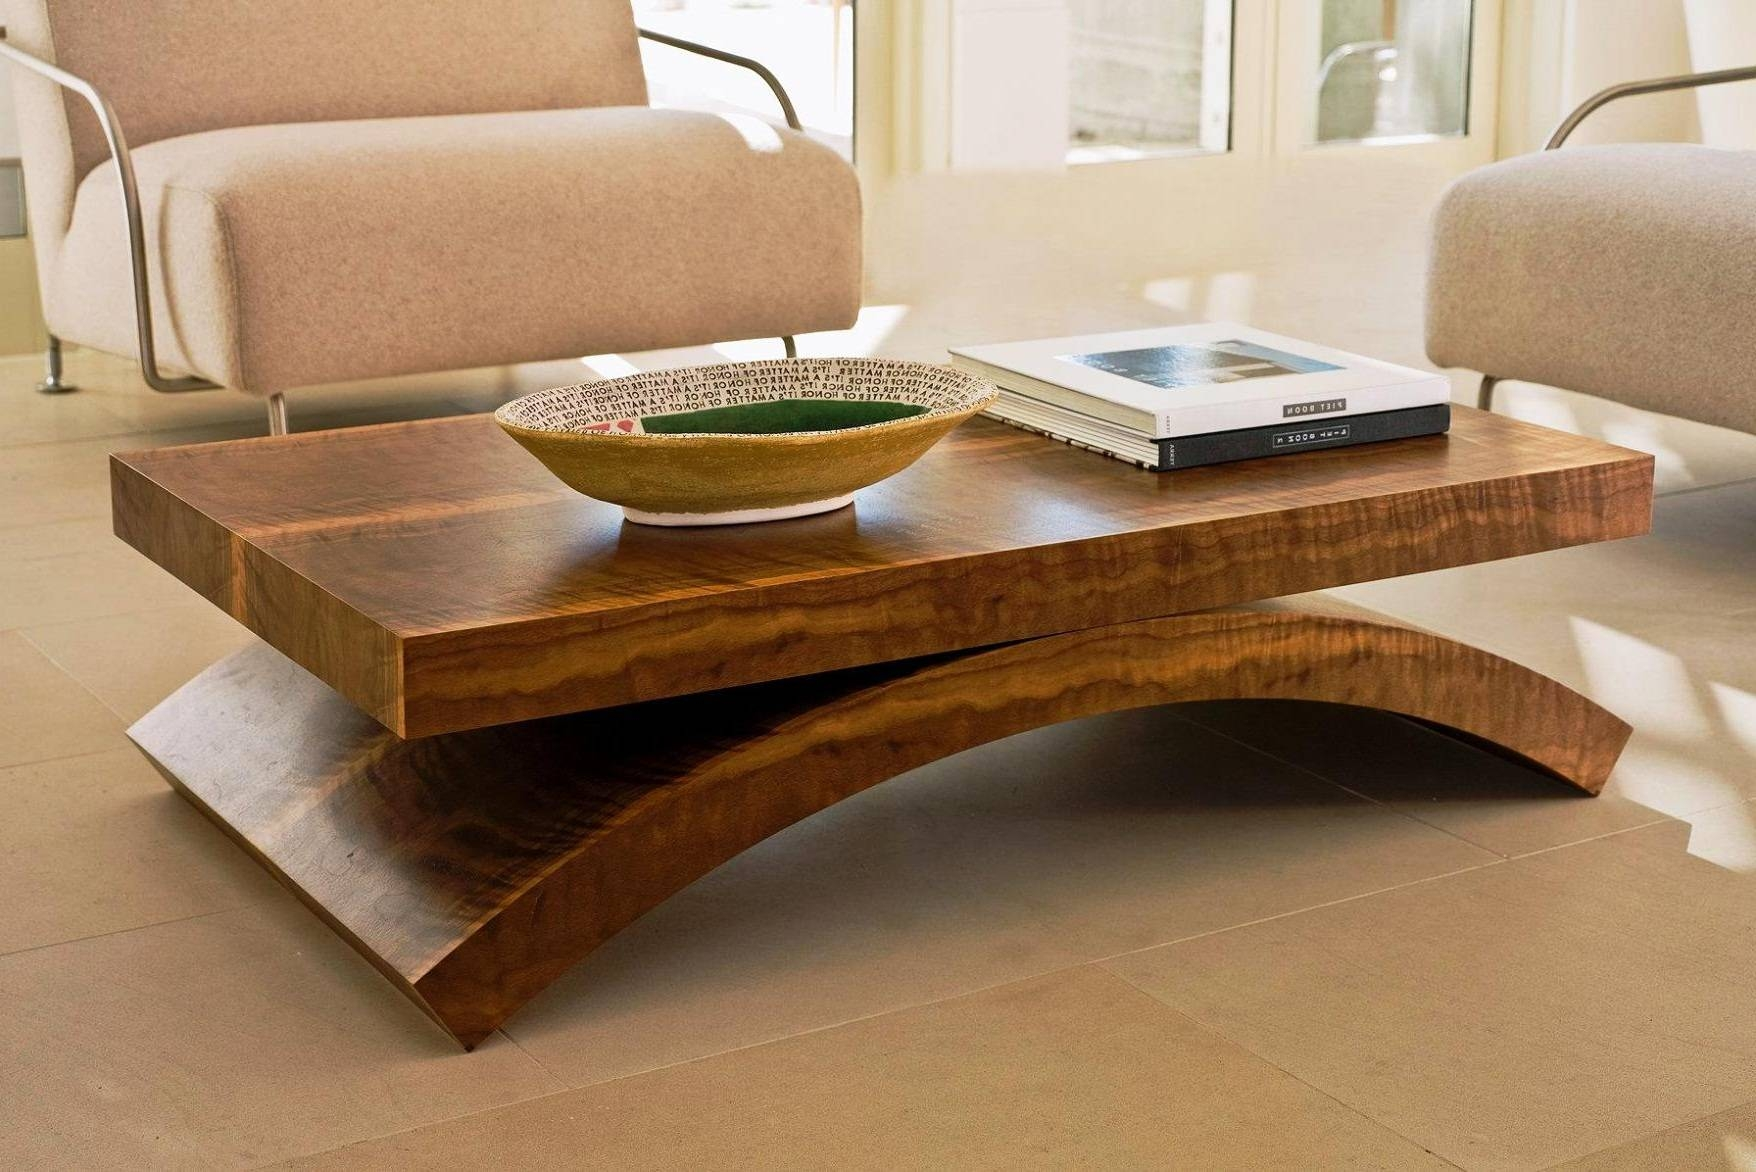 Coffee Table. Stylish Extra Large Coffee Table Designs inside Large Square Wood Coffee Tables (Image 5 of 30)